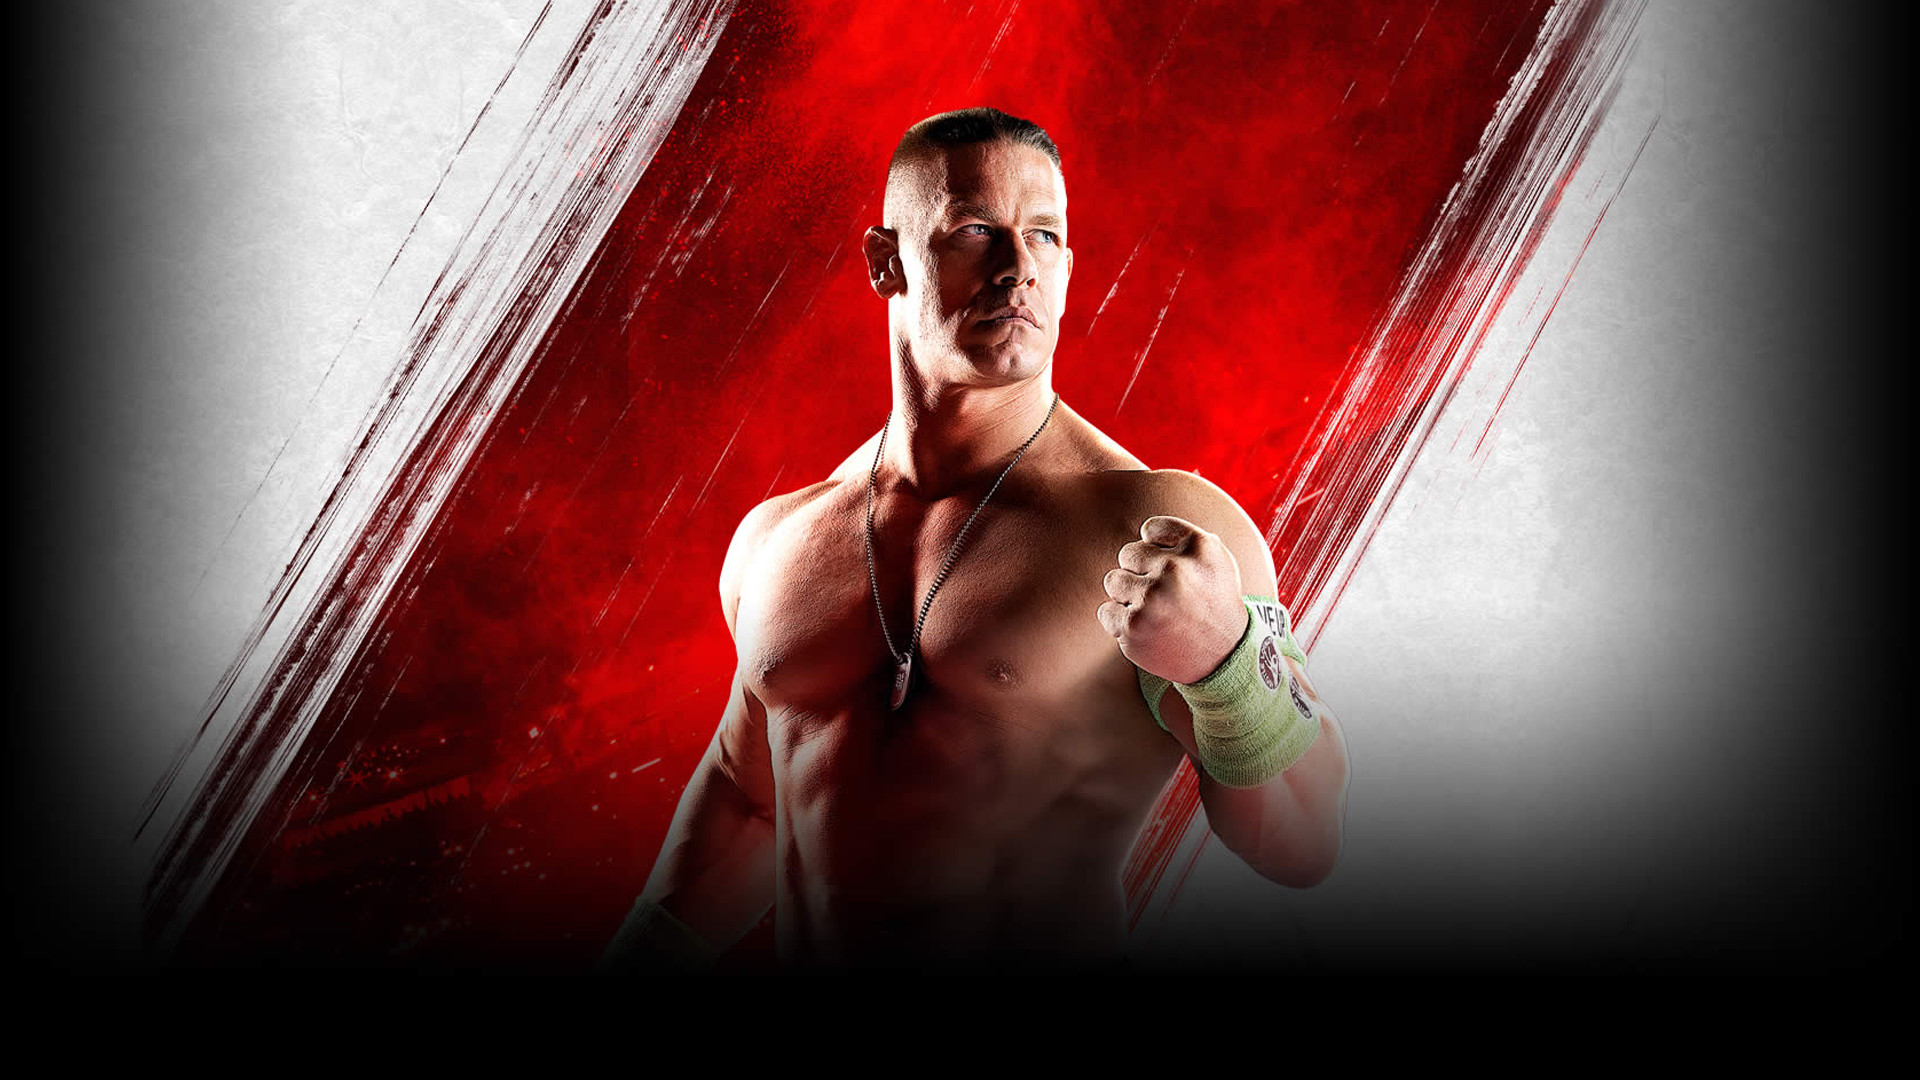 Res: 1920x1080, ... Wallpaper JohnCena Art WWE2K15 Wallpaper Logo ...